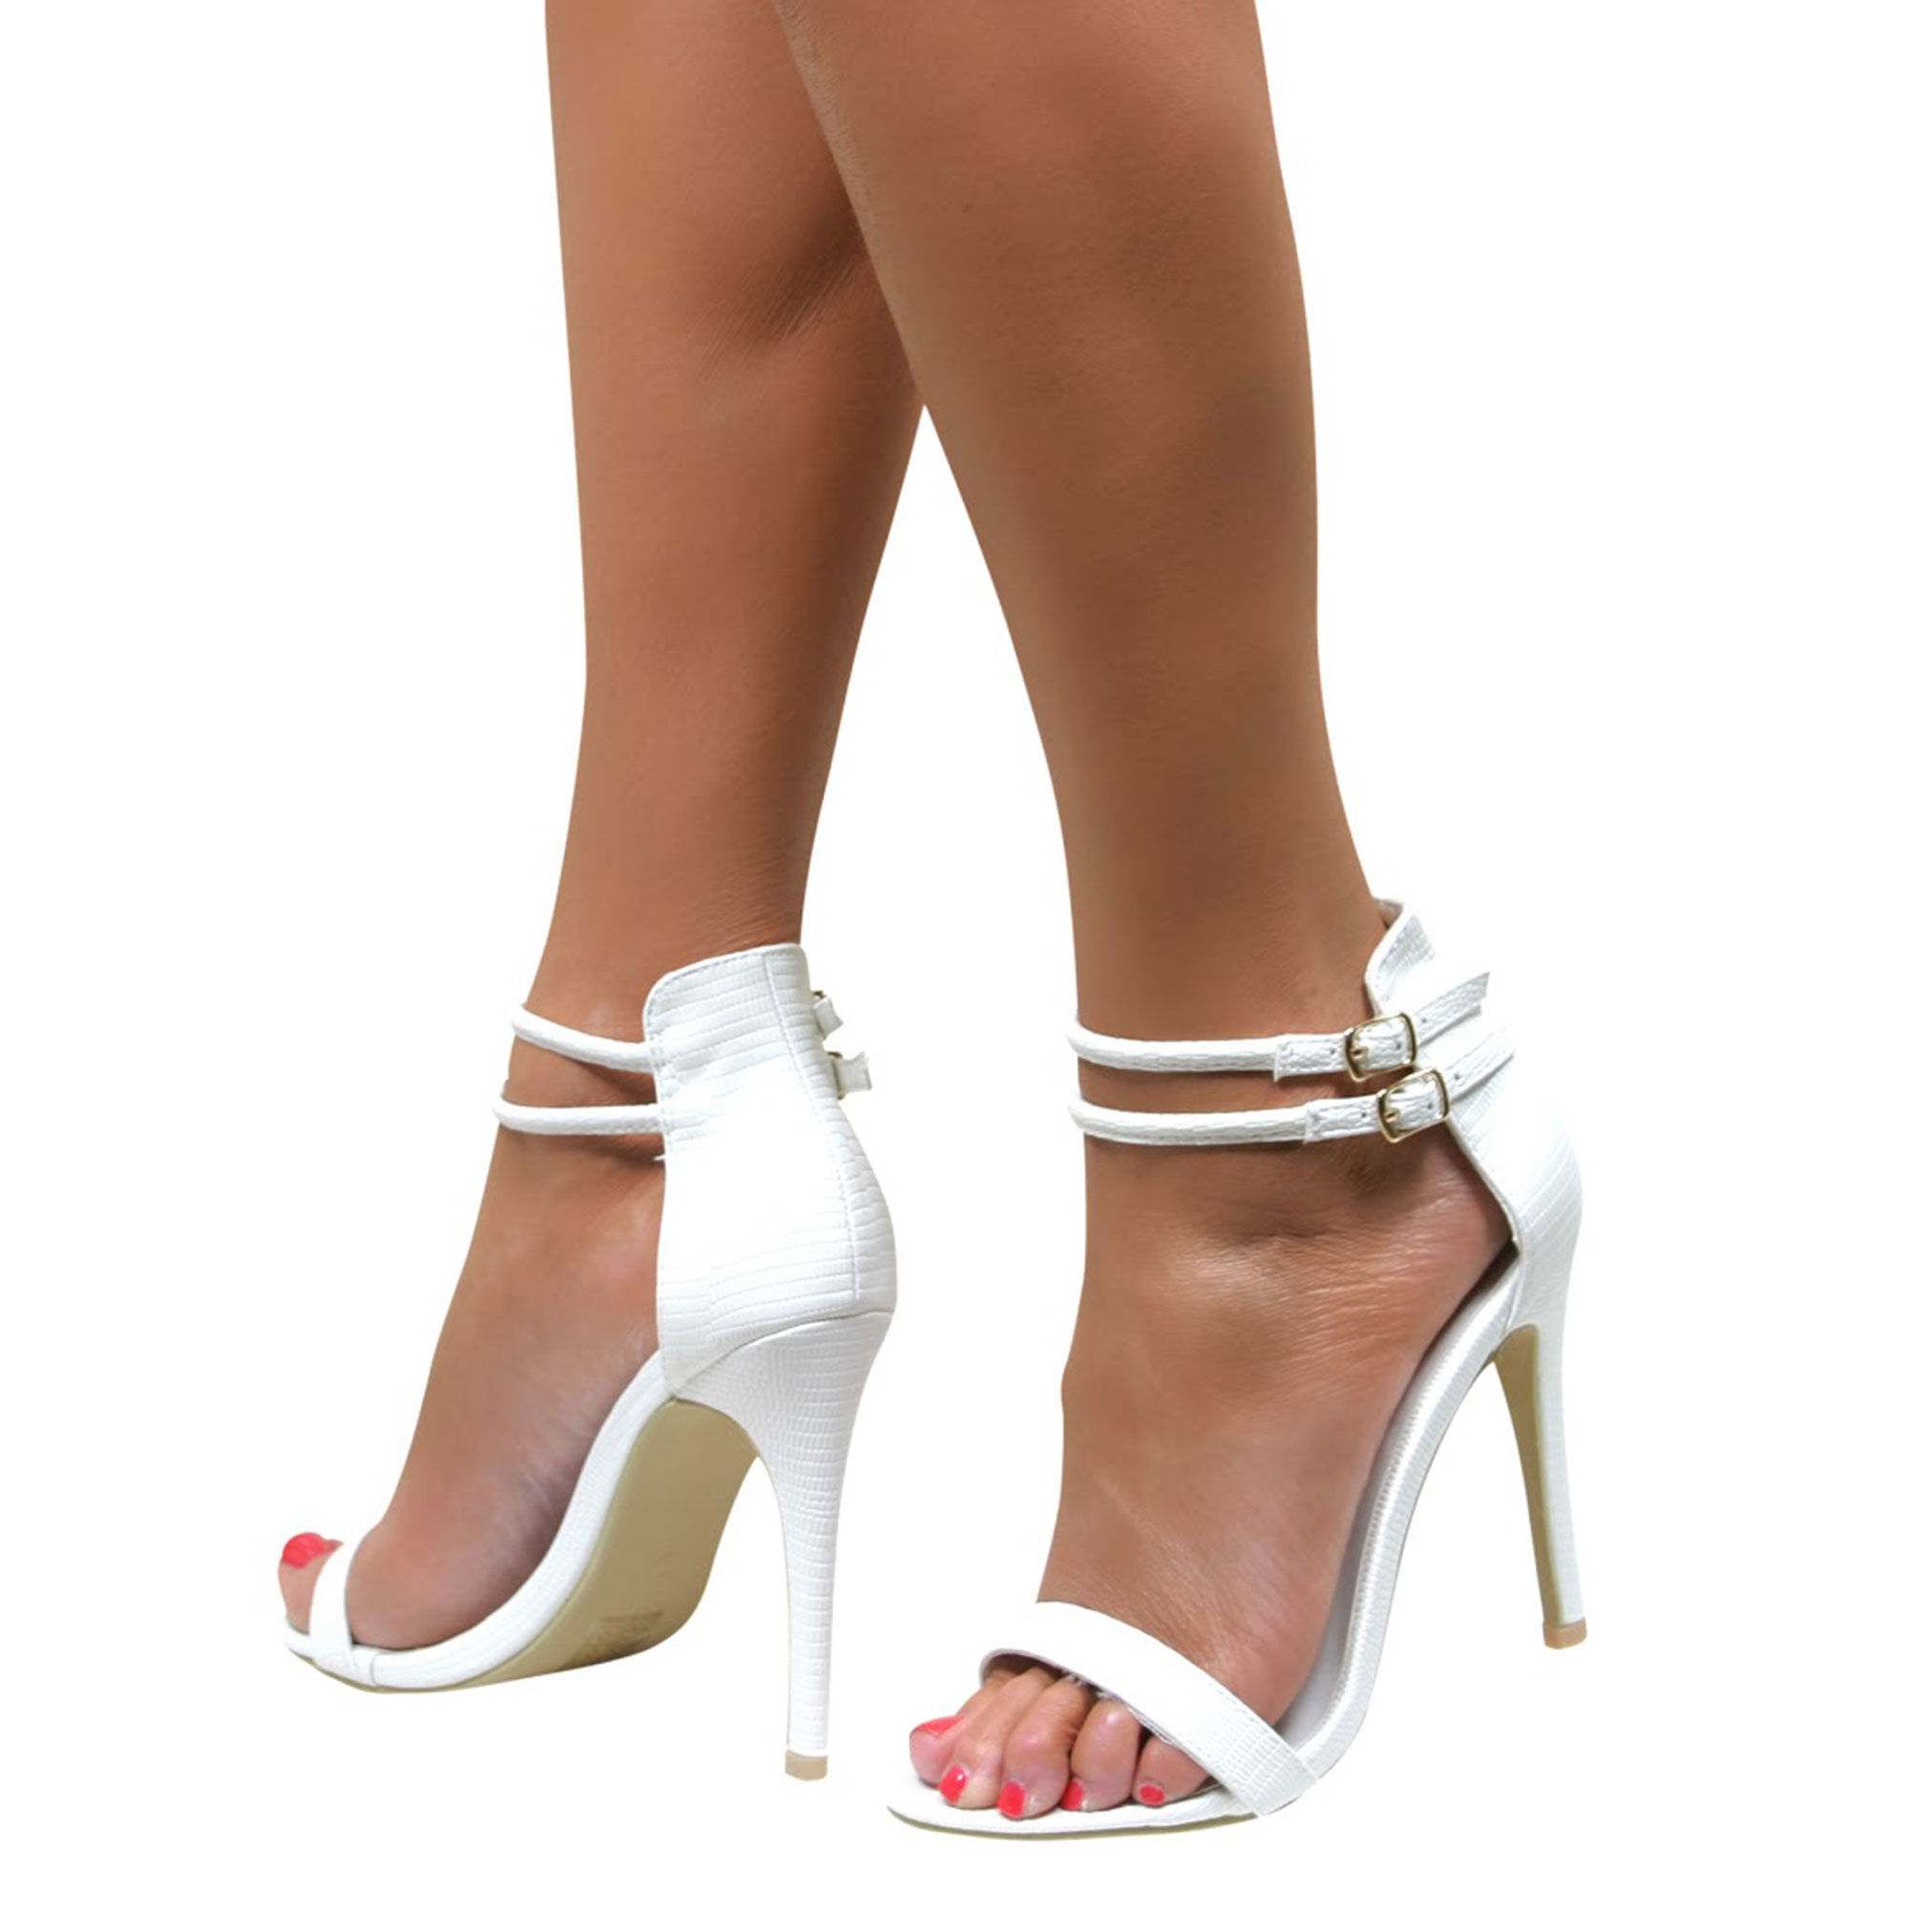 barely there stiletto high heels ankle cuff strappy